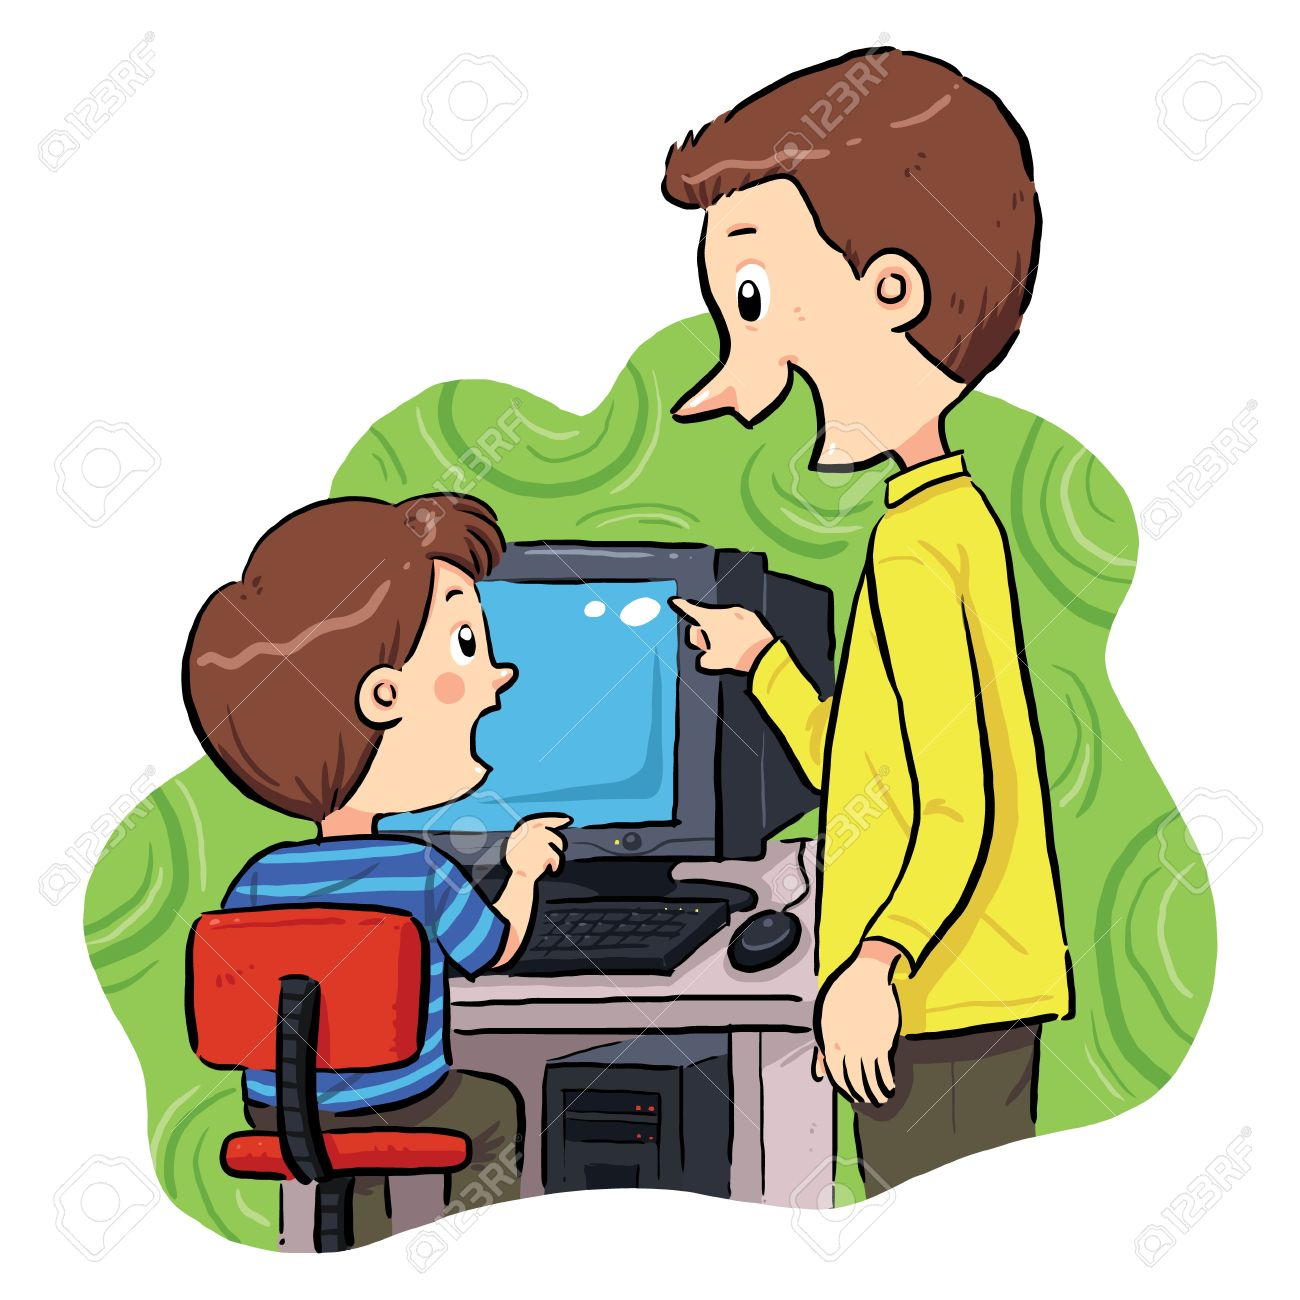 Computer Learning  A boy learning how to operating computer Stock Vector - 19257668